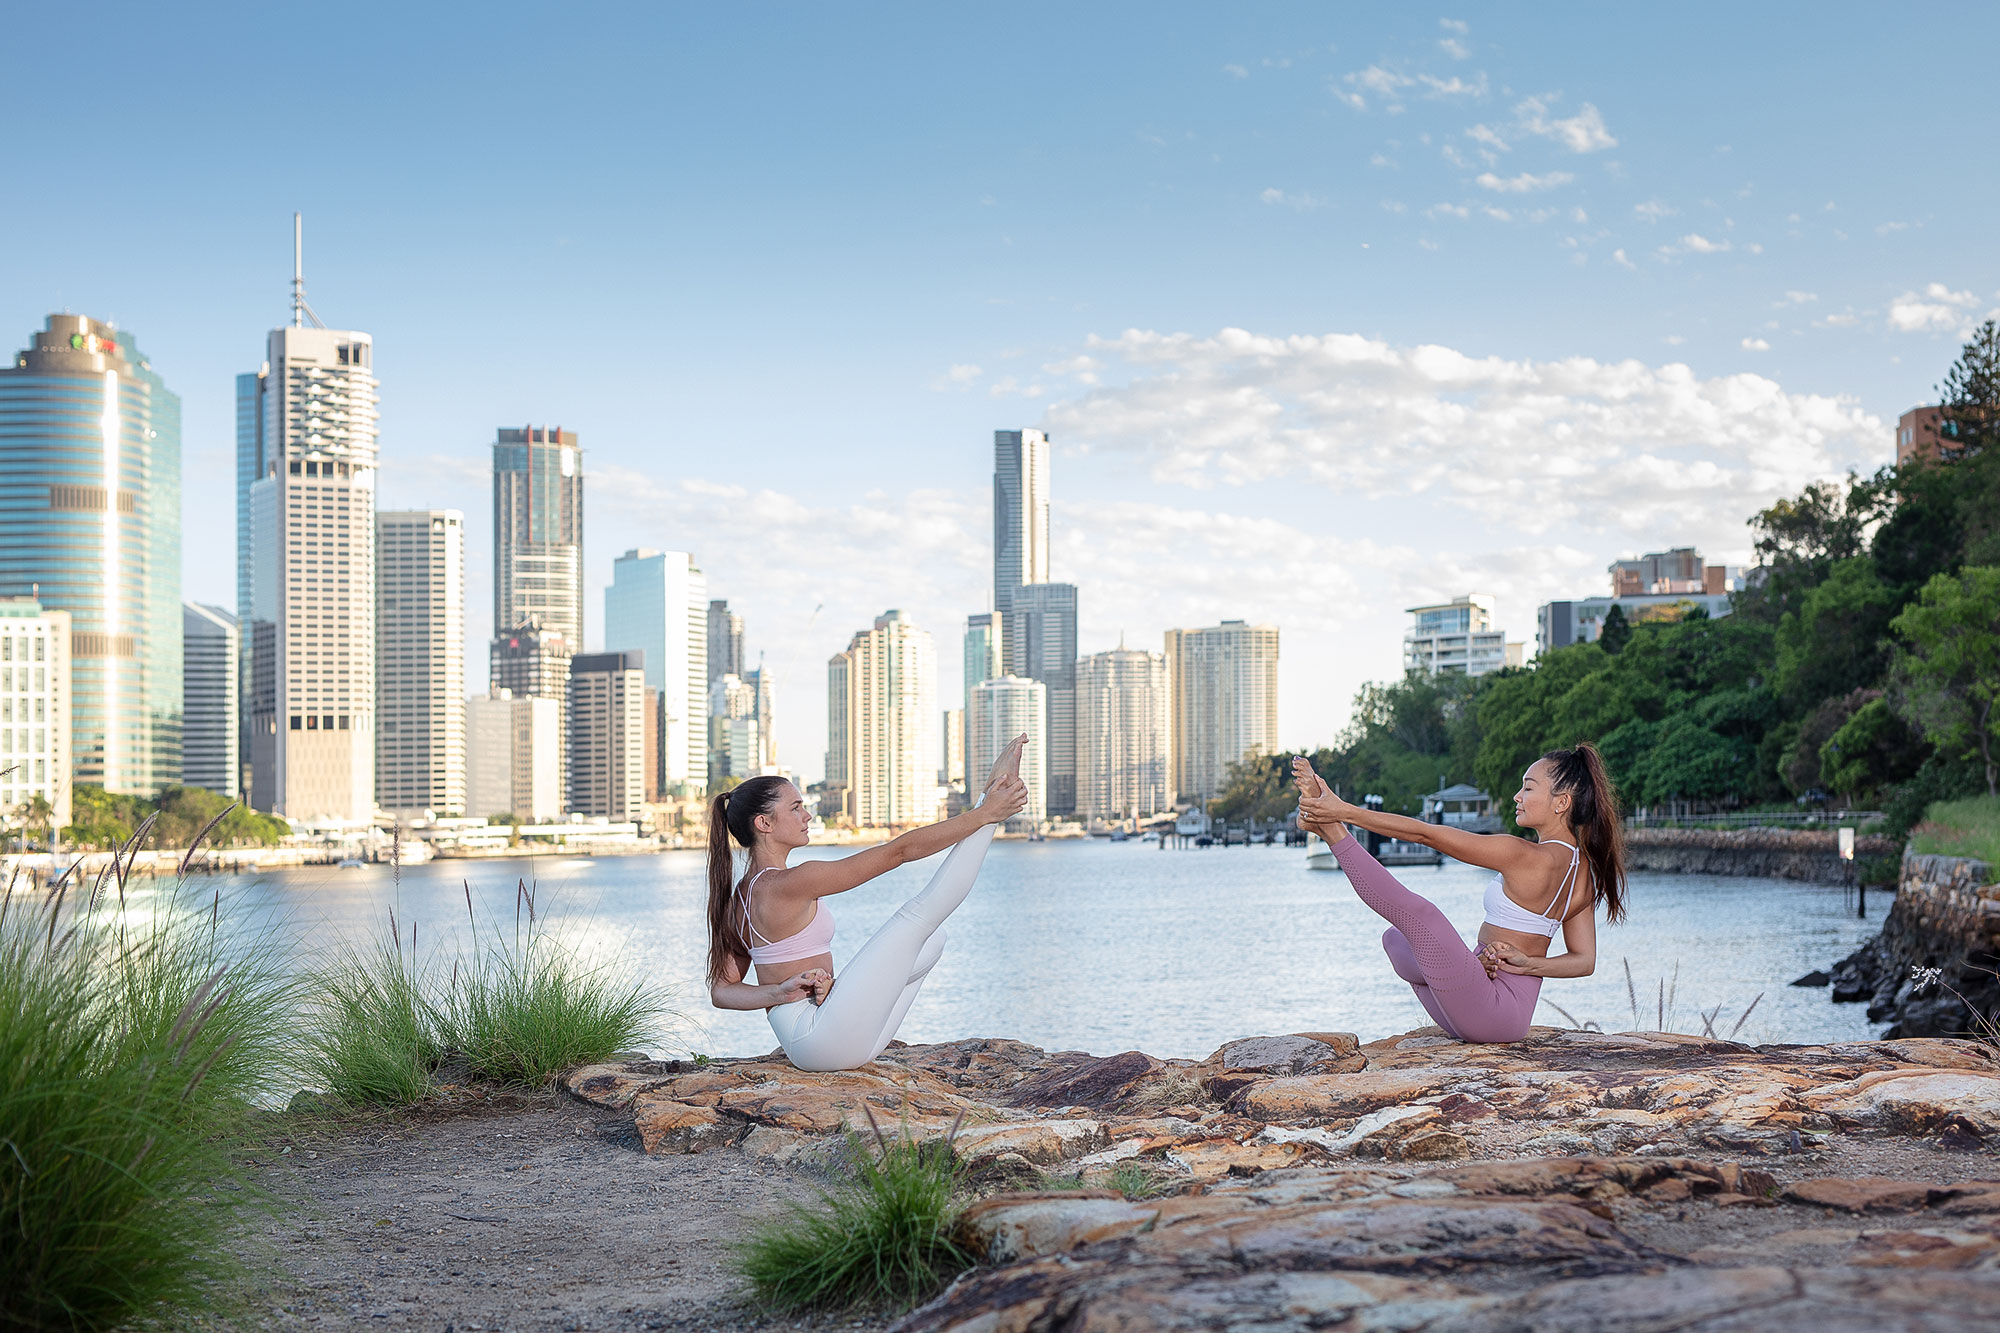 Lifestyle Yoga Photography by Adrian Kilchherr Brisbane Australia Europe Switzerland